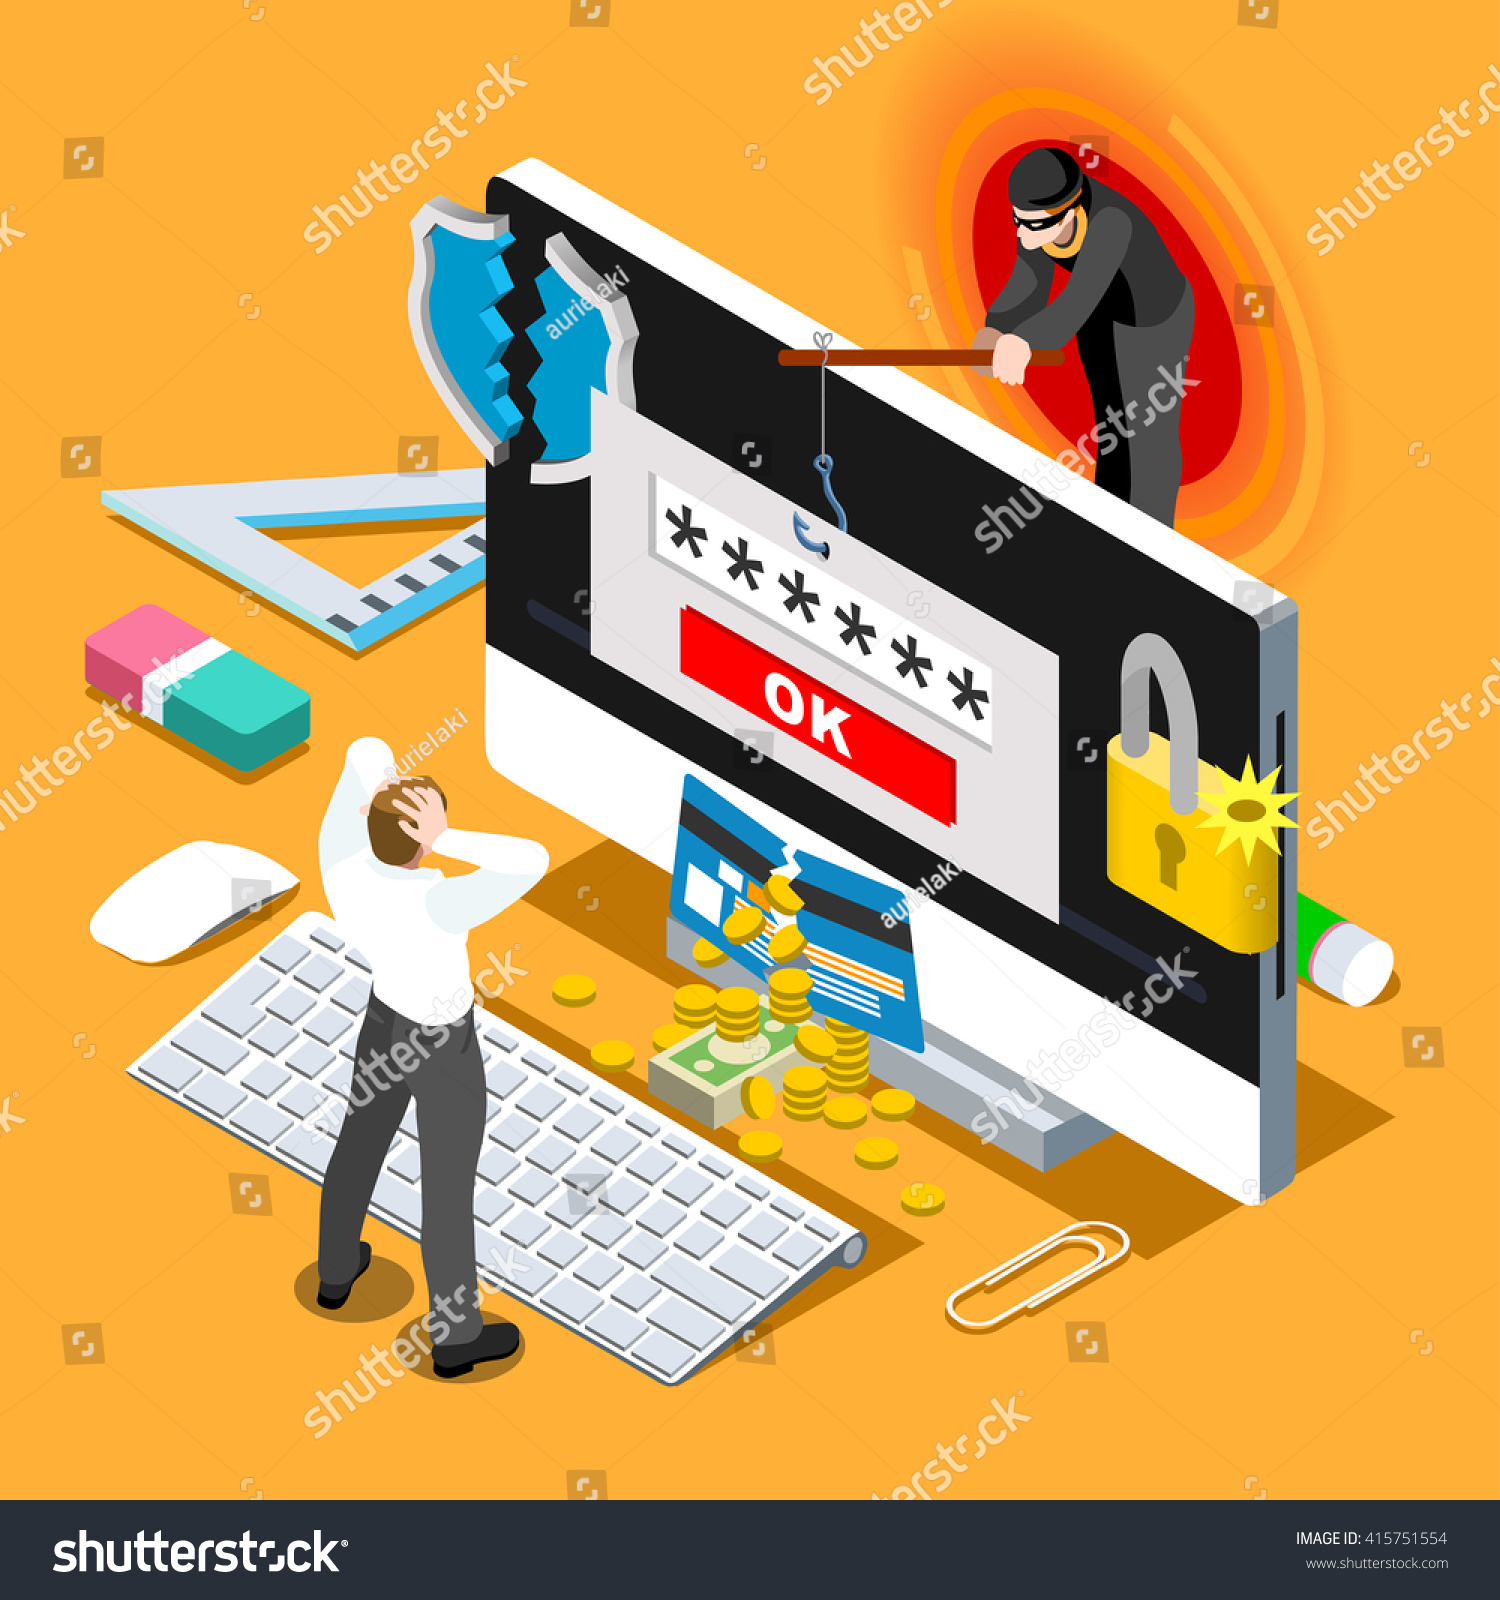 the threats of internet crime and combating computer hacking Frequently asked questions internet crime includes any illegal activity involving one or more components of the internet computer hacking.